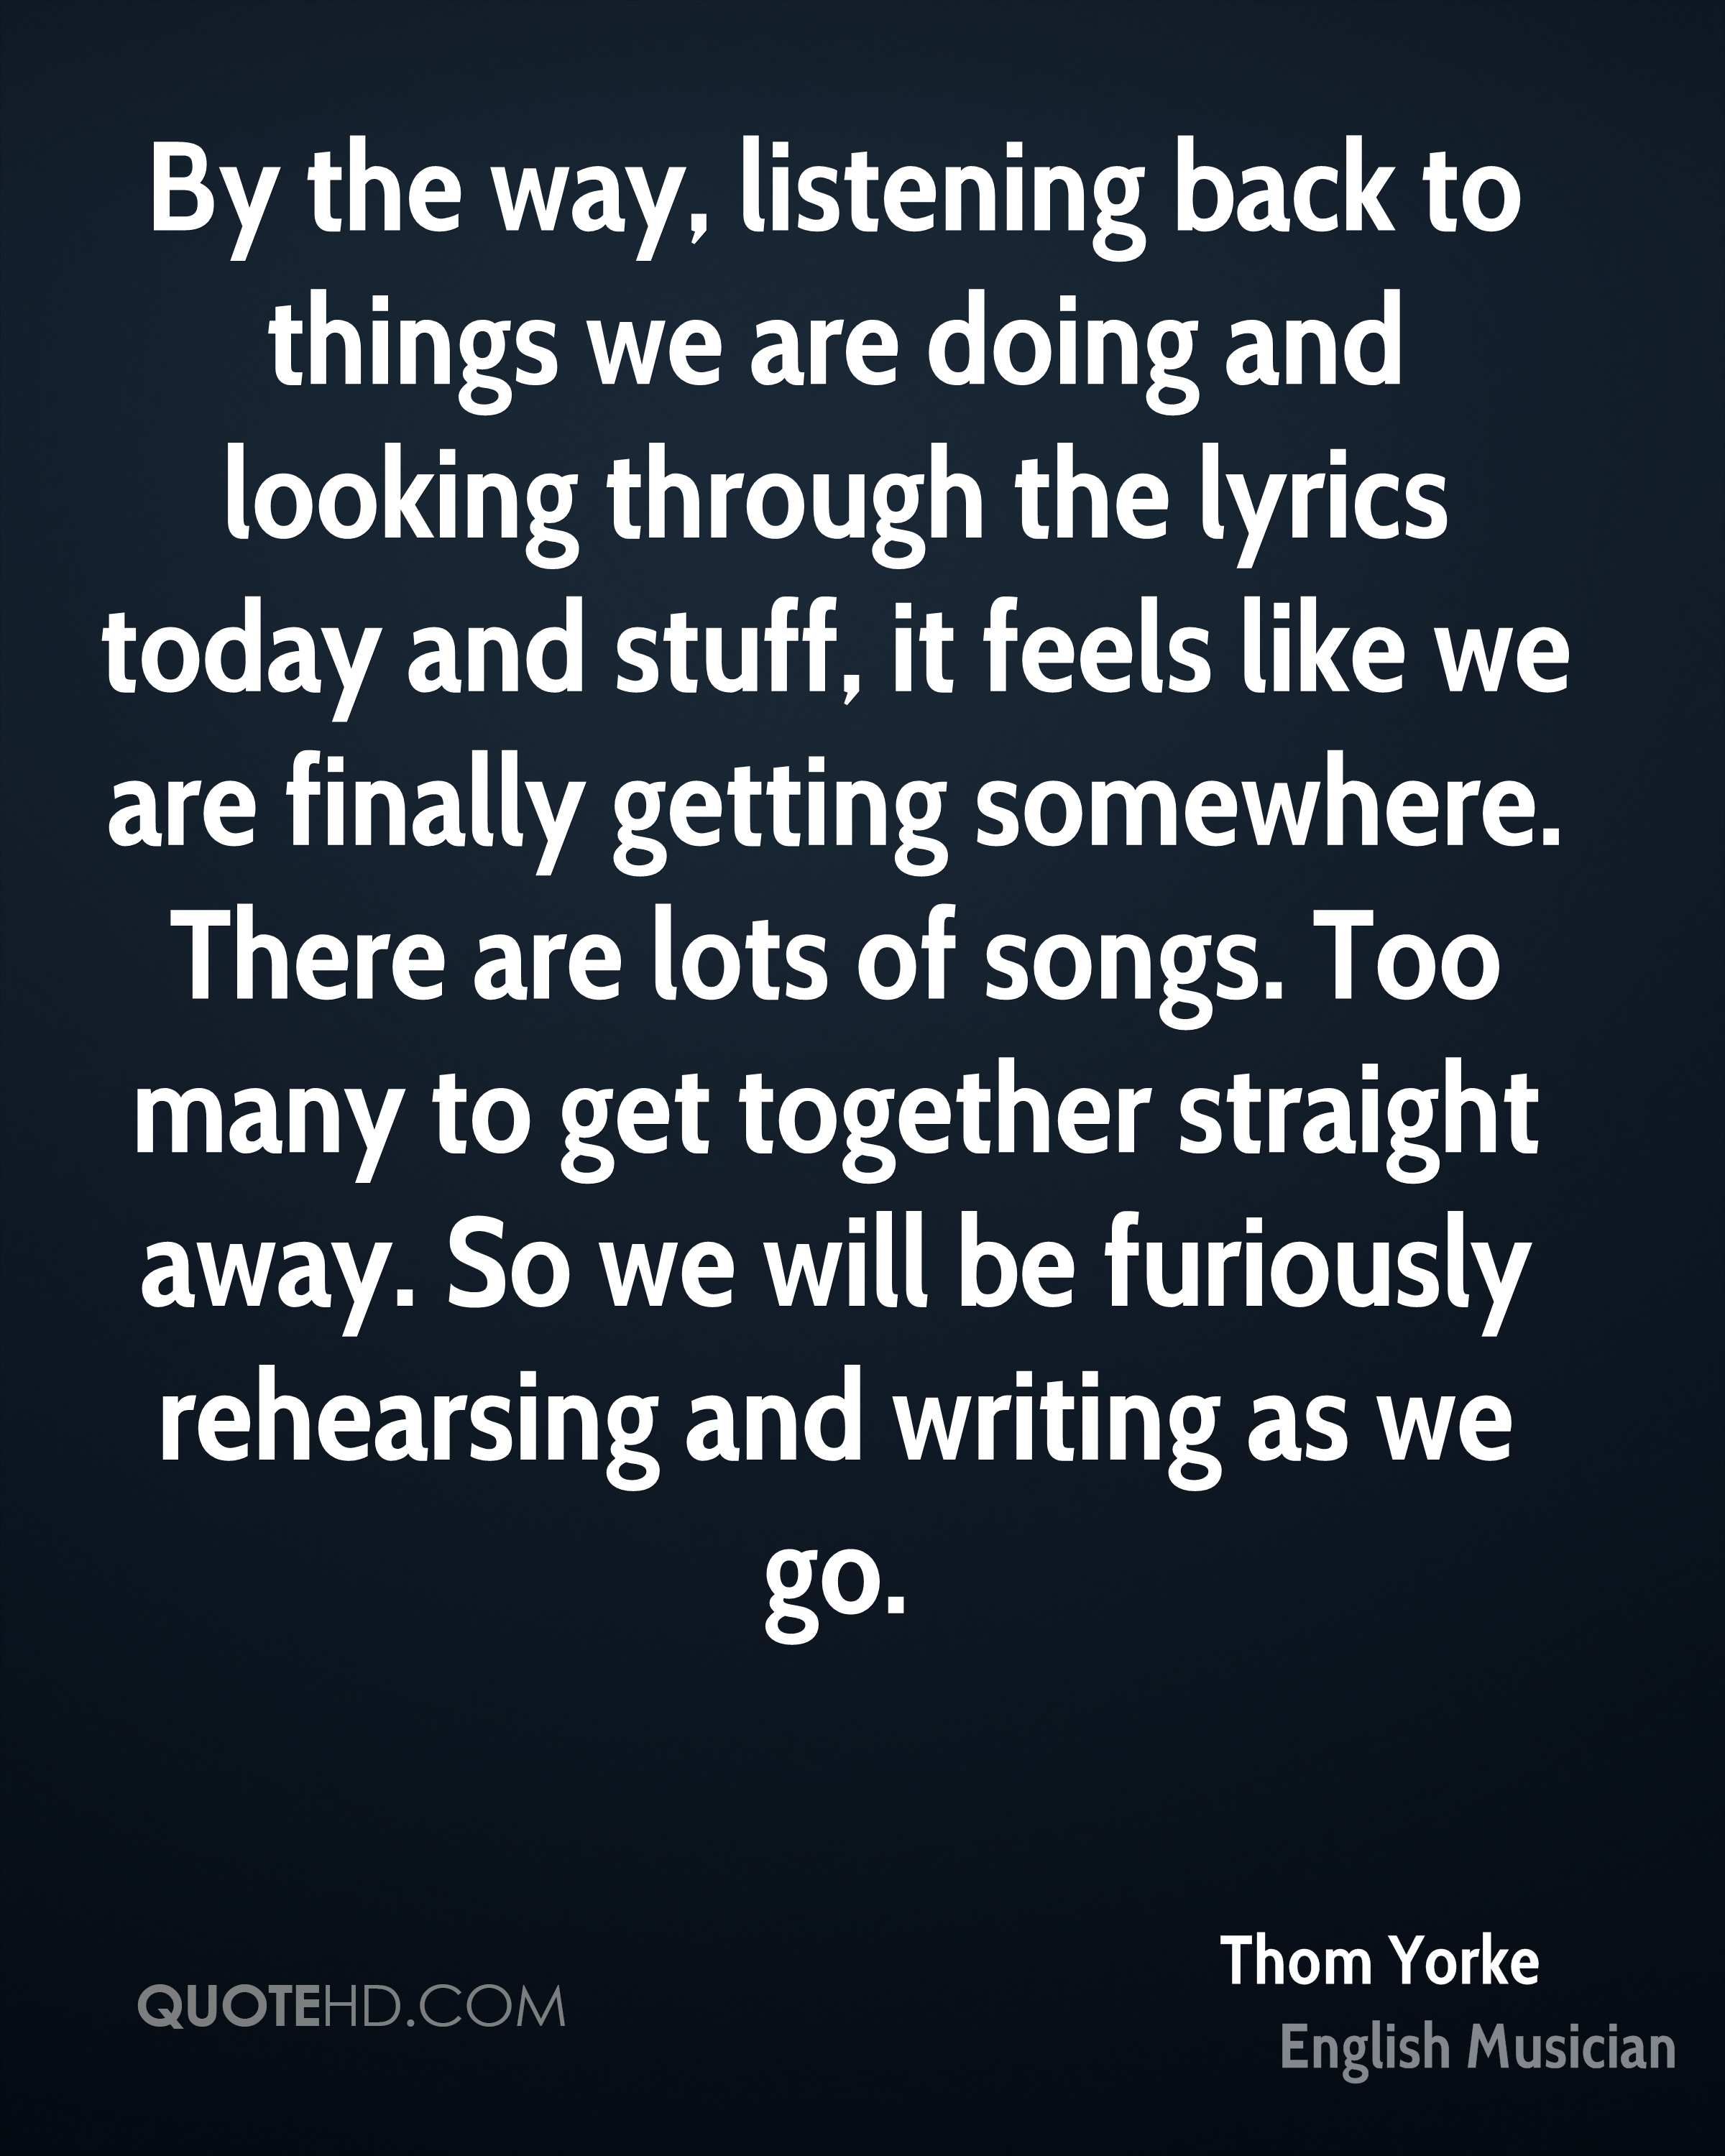 By the way, listening back to things we are doing and looking through the lyrics today and stuff, it feels like we are finally getting somewhere. There are lots of songs. Too many to get together straight away. So we will be furiously rehearsing and writing as we go.